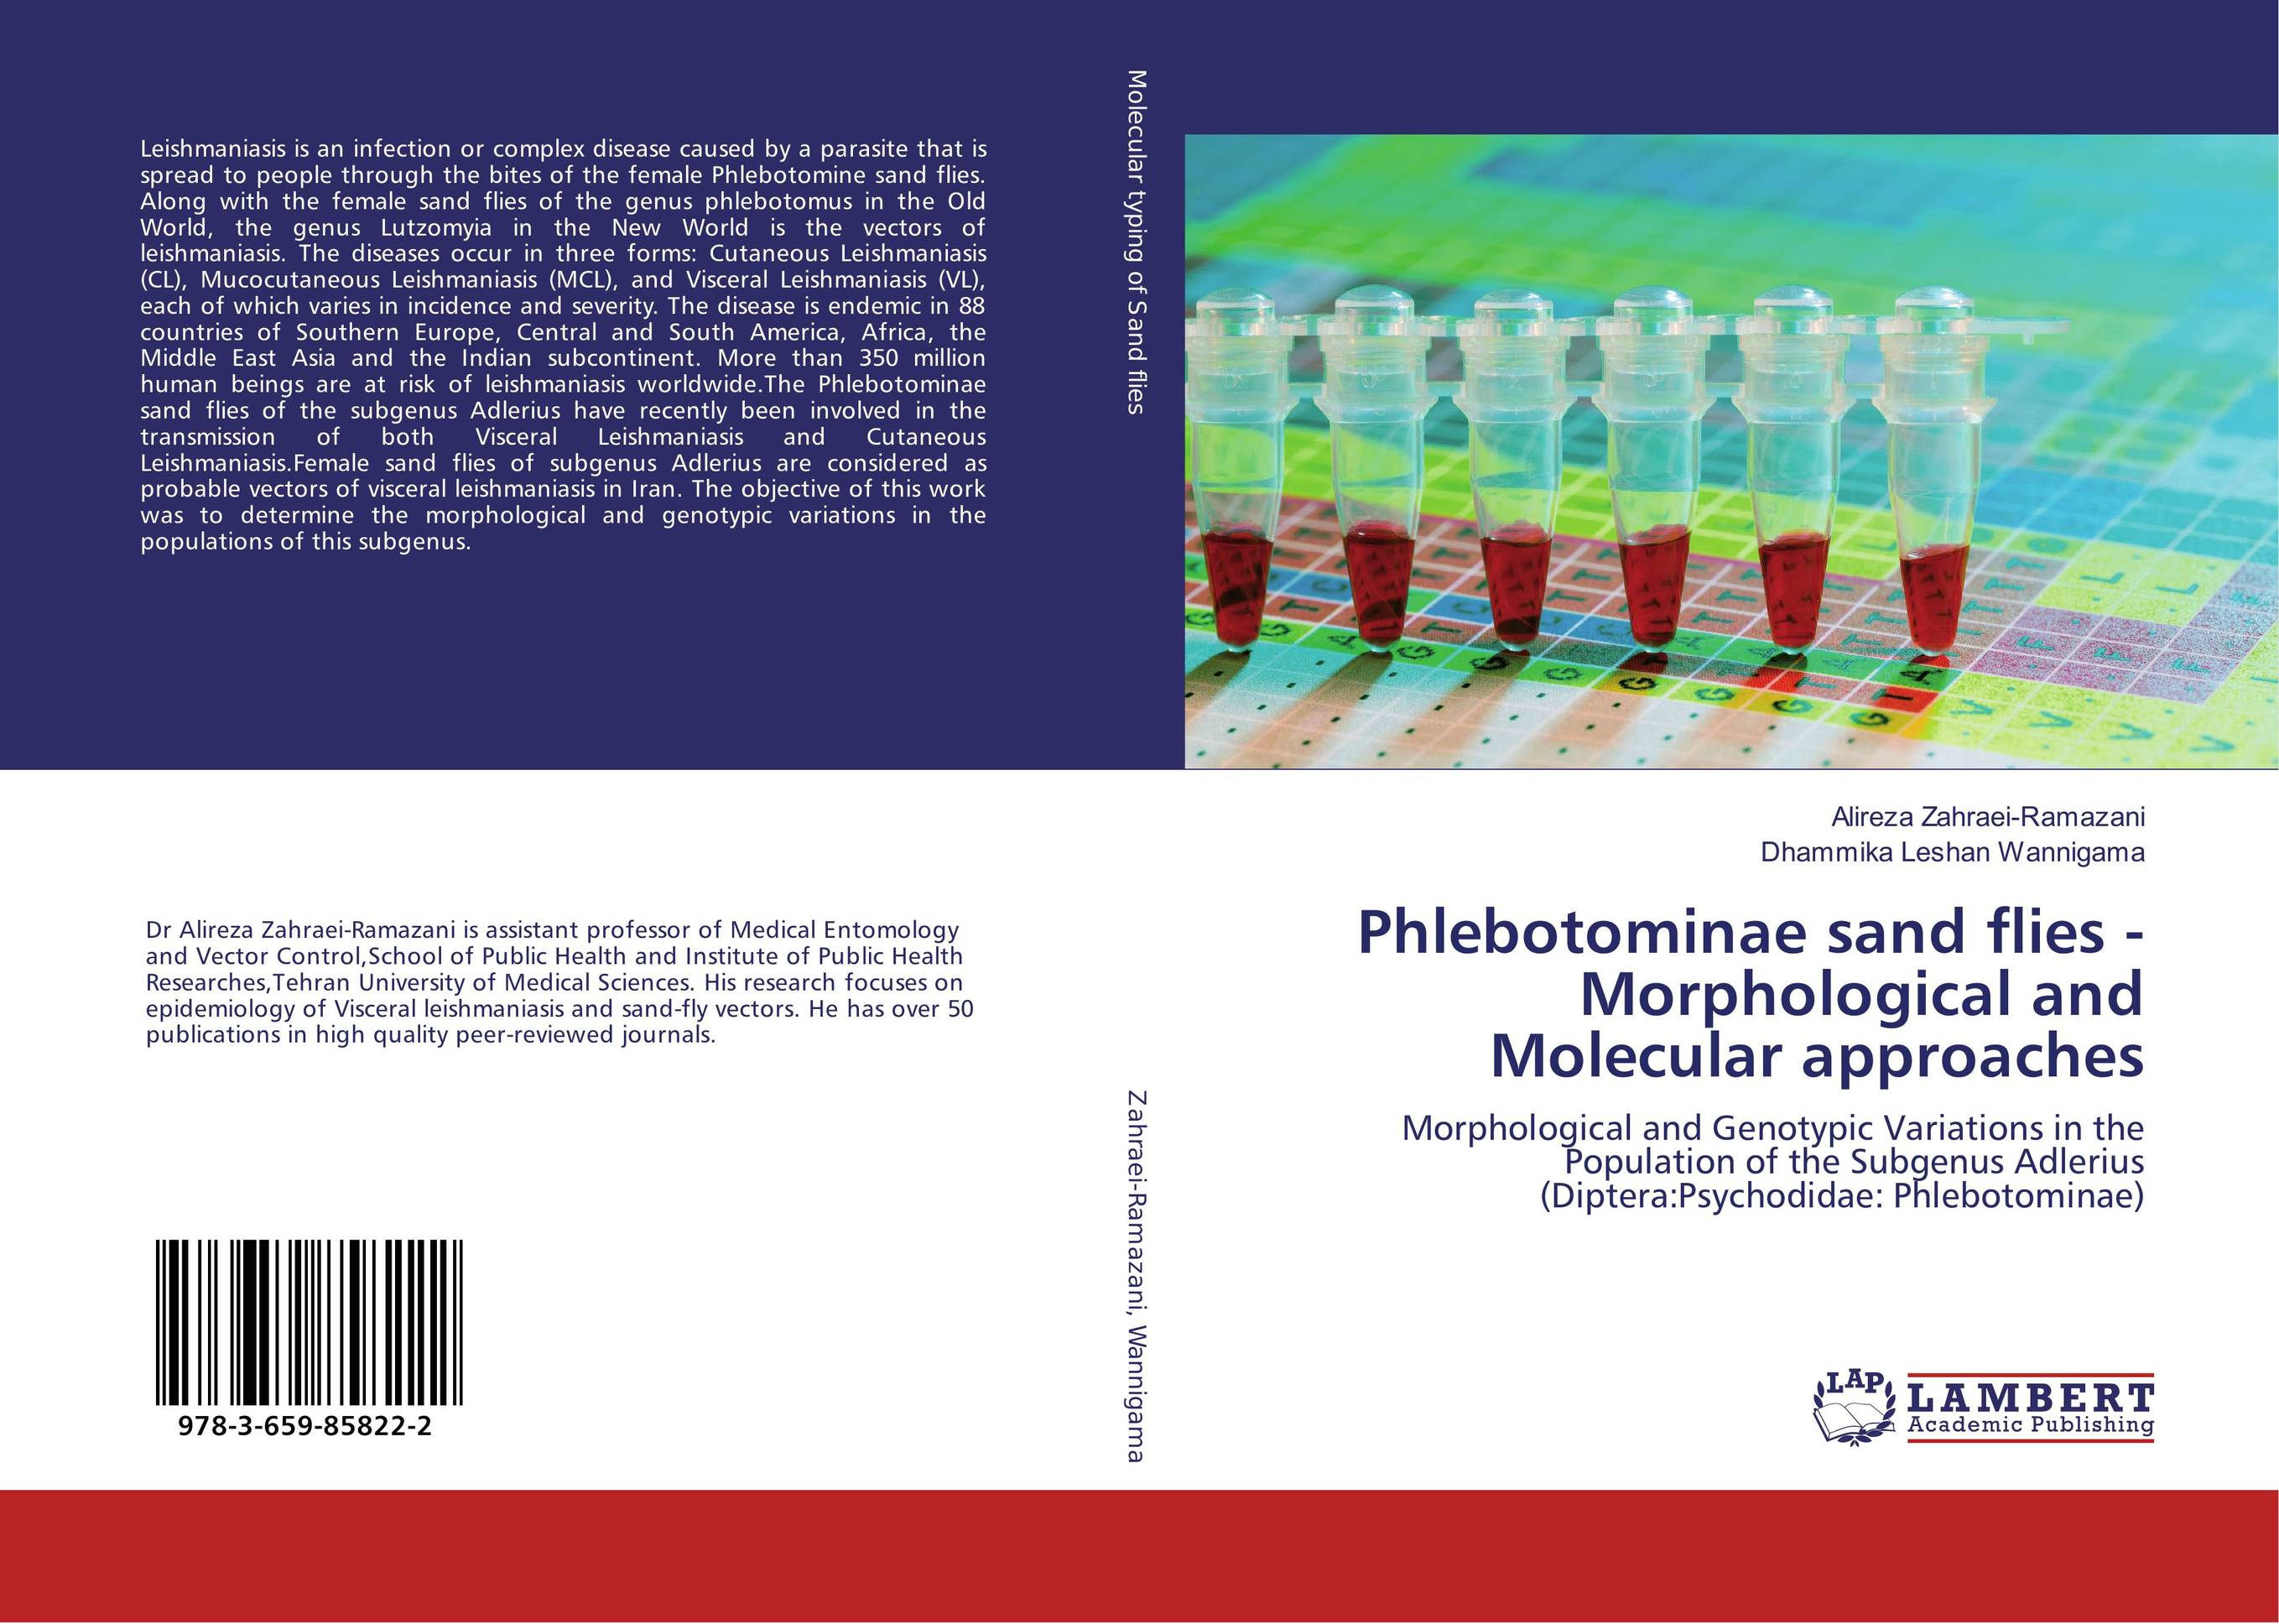 Phlebotominae sand flies -Morphological and Molecular approaches